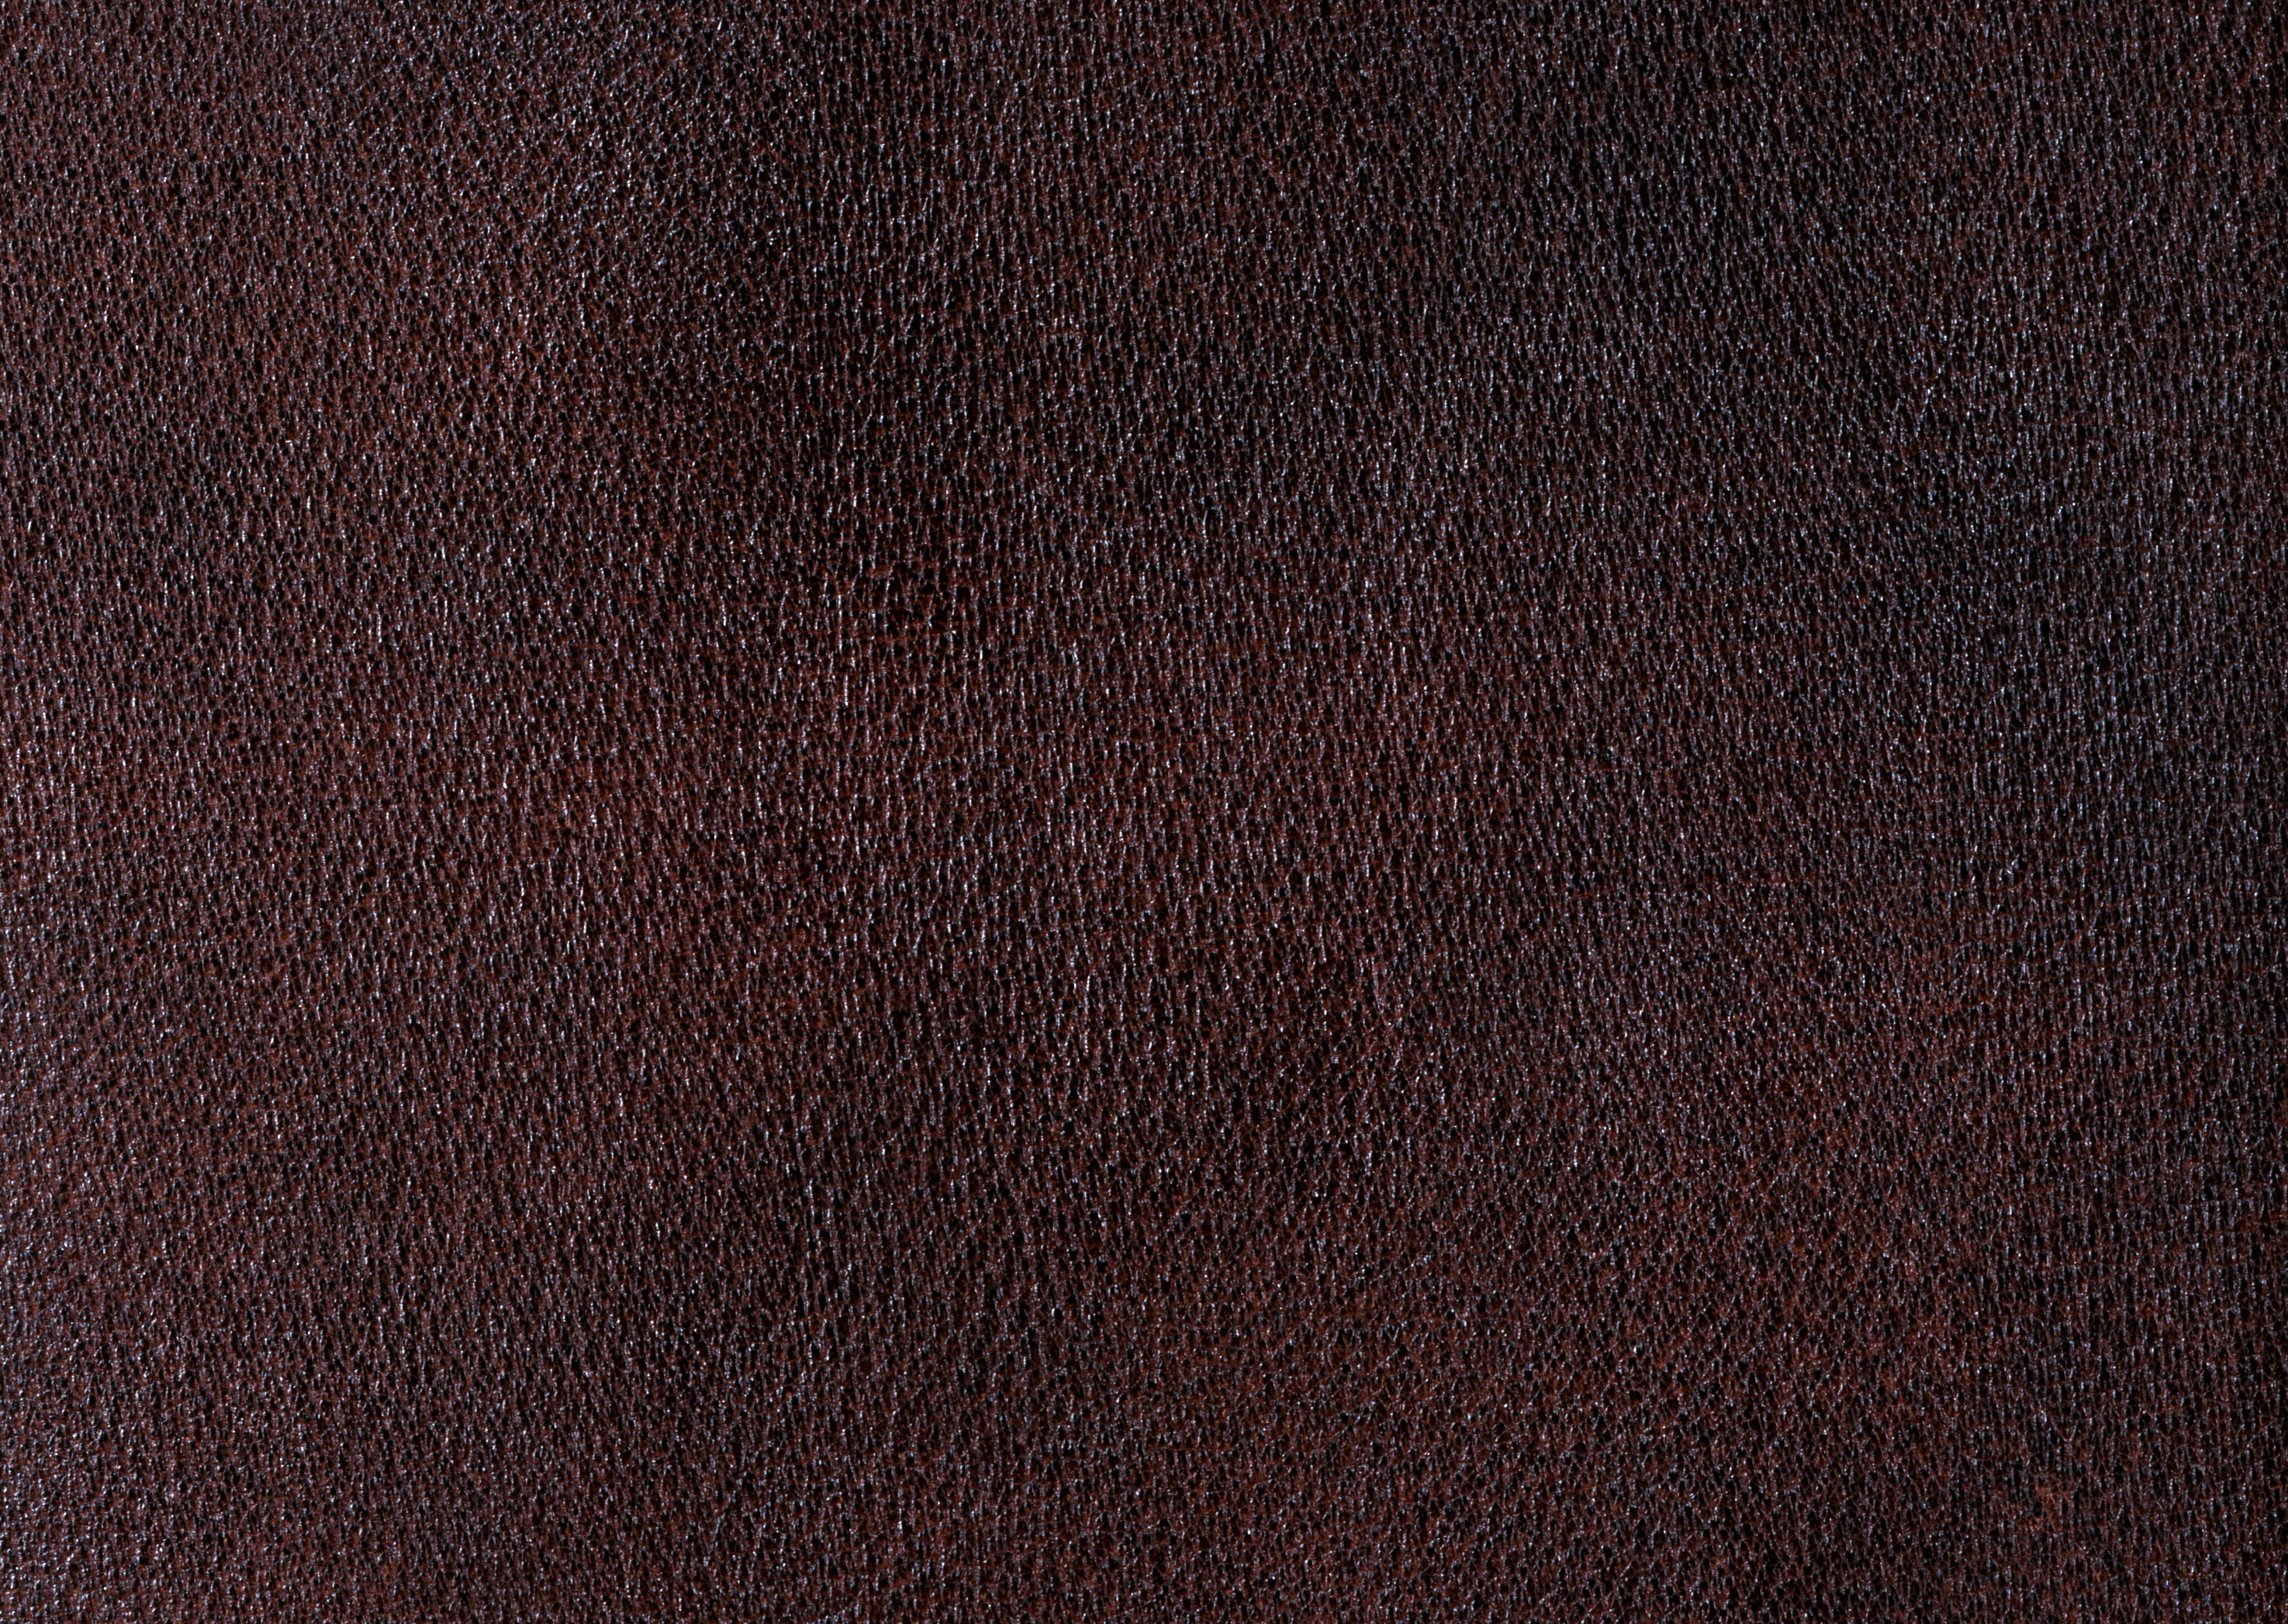 Brown leather big textures background image, free picture leather download